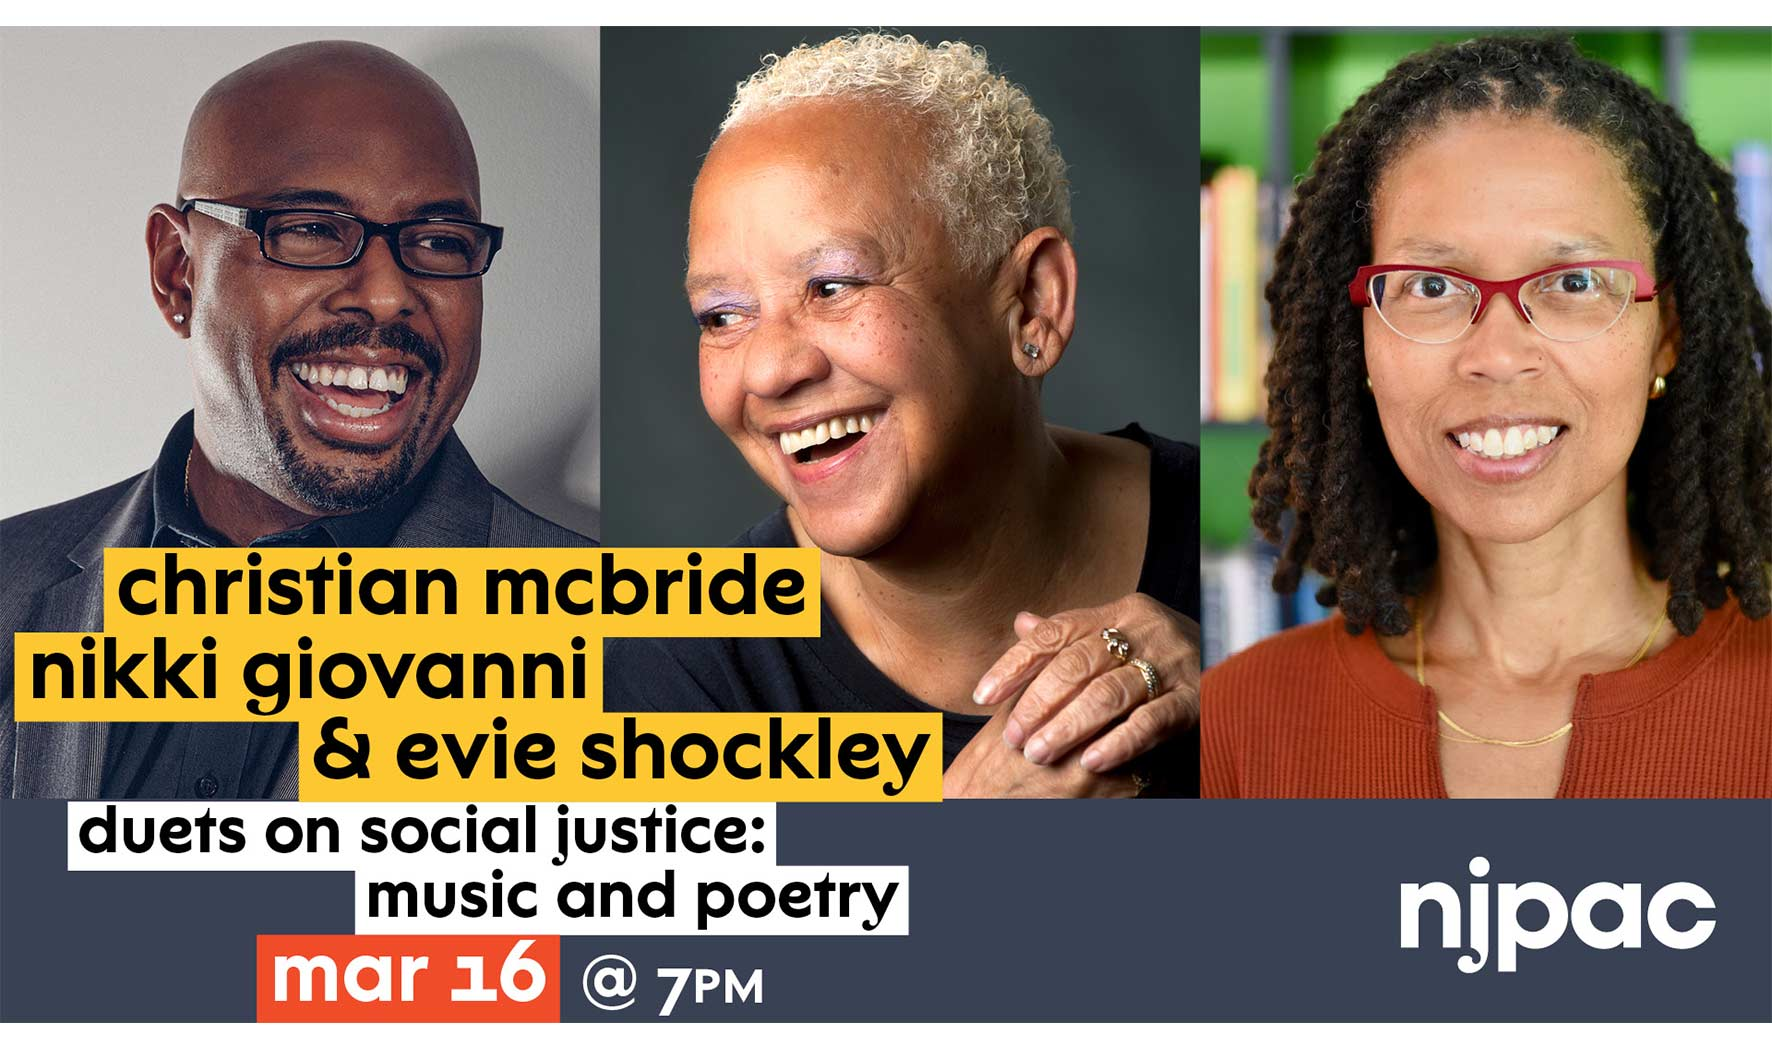 Duets on Social Justice: Music and Poetry